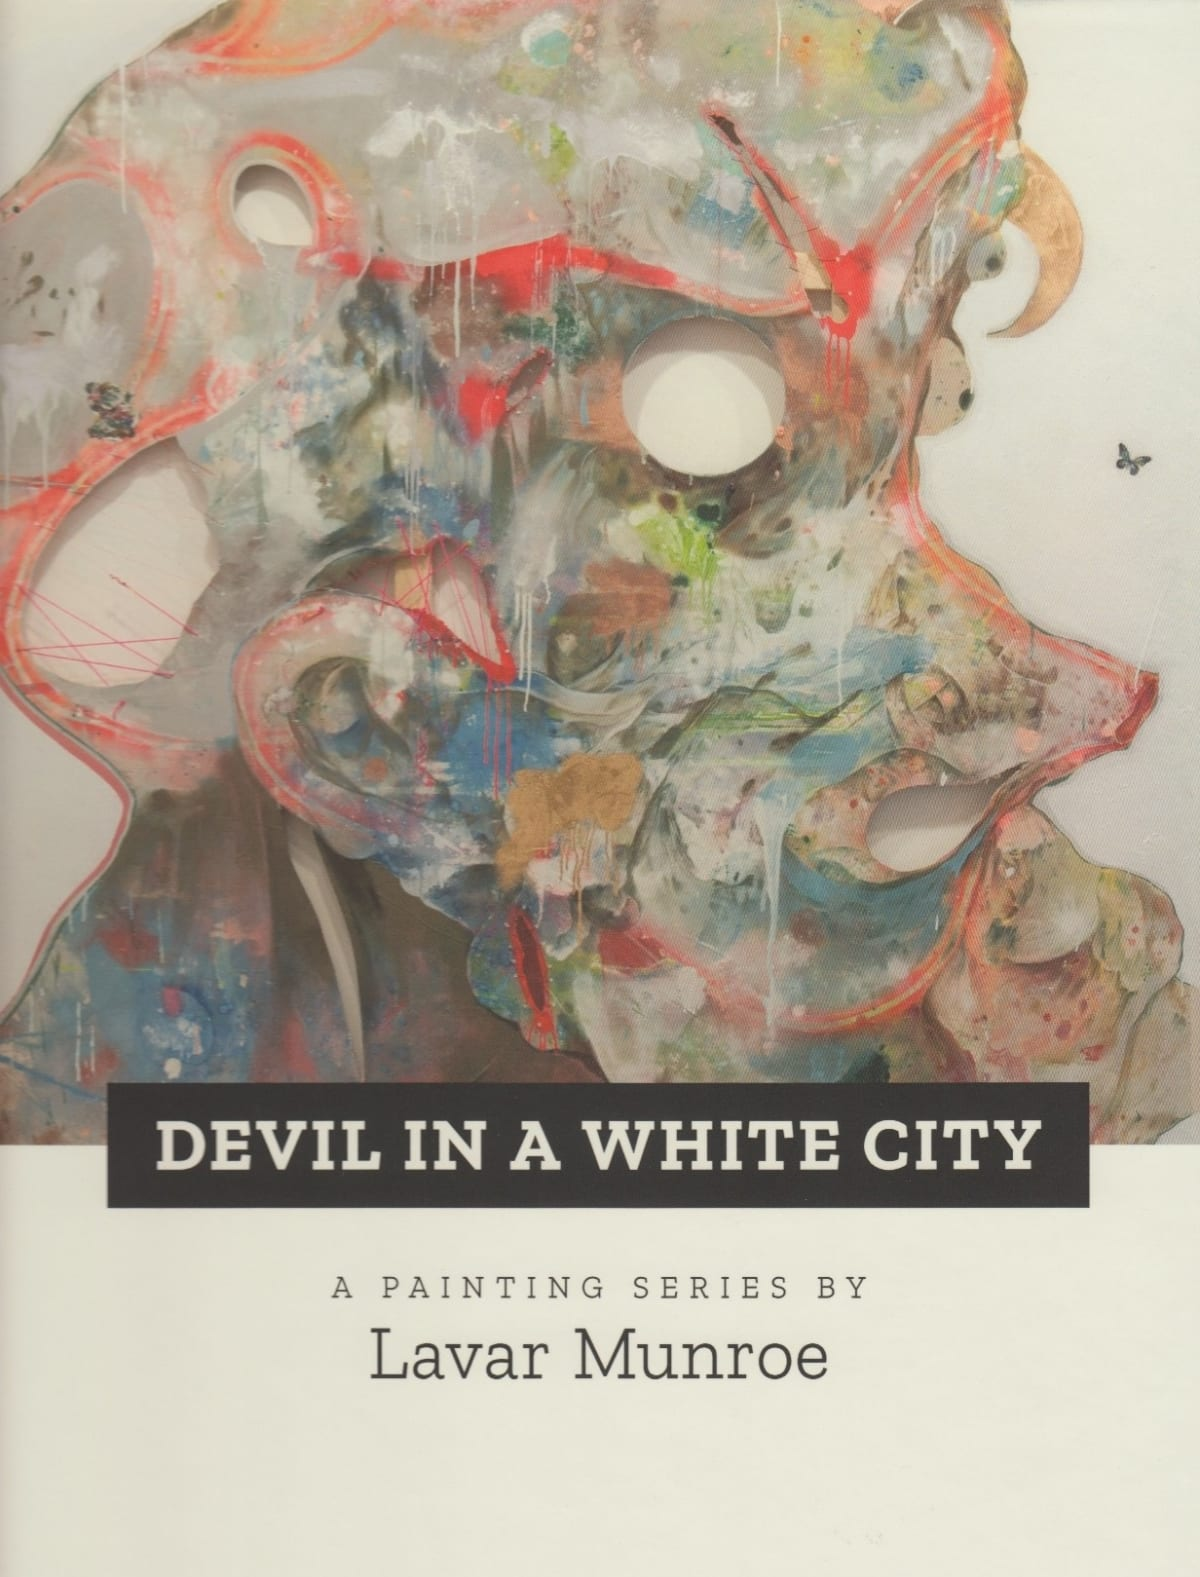 Devil in a White City: A Painting Series by Lavar Munroe